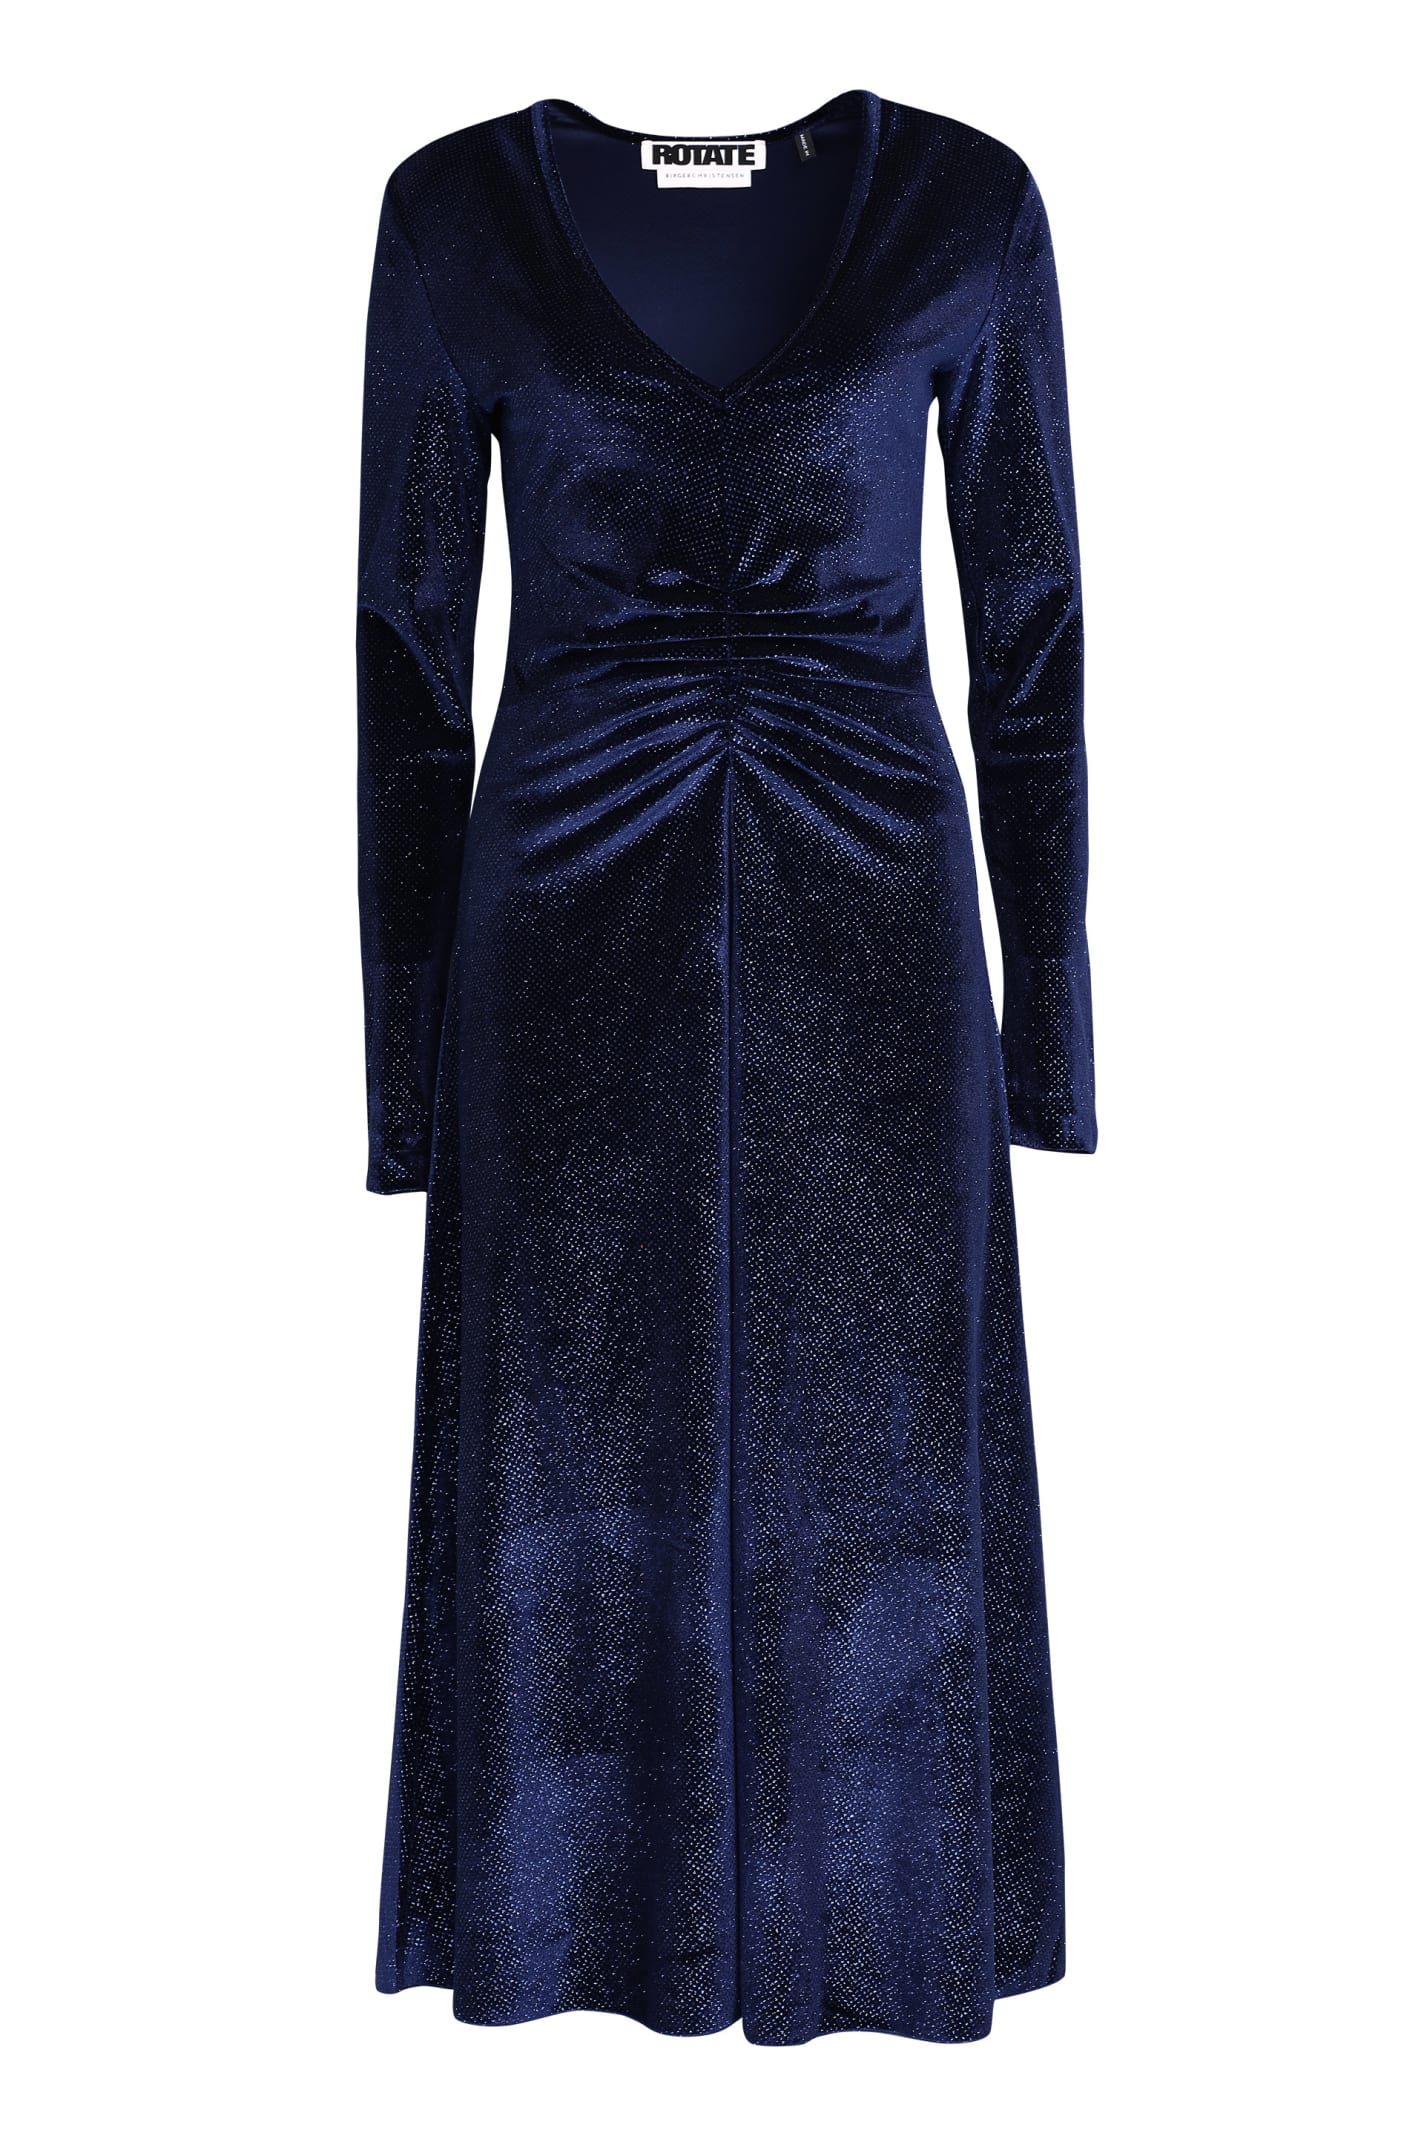 Rotate by Birger Christensen Glitter Velvet Dress